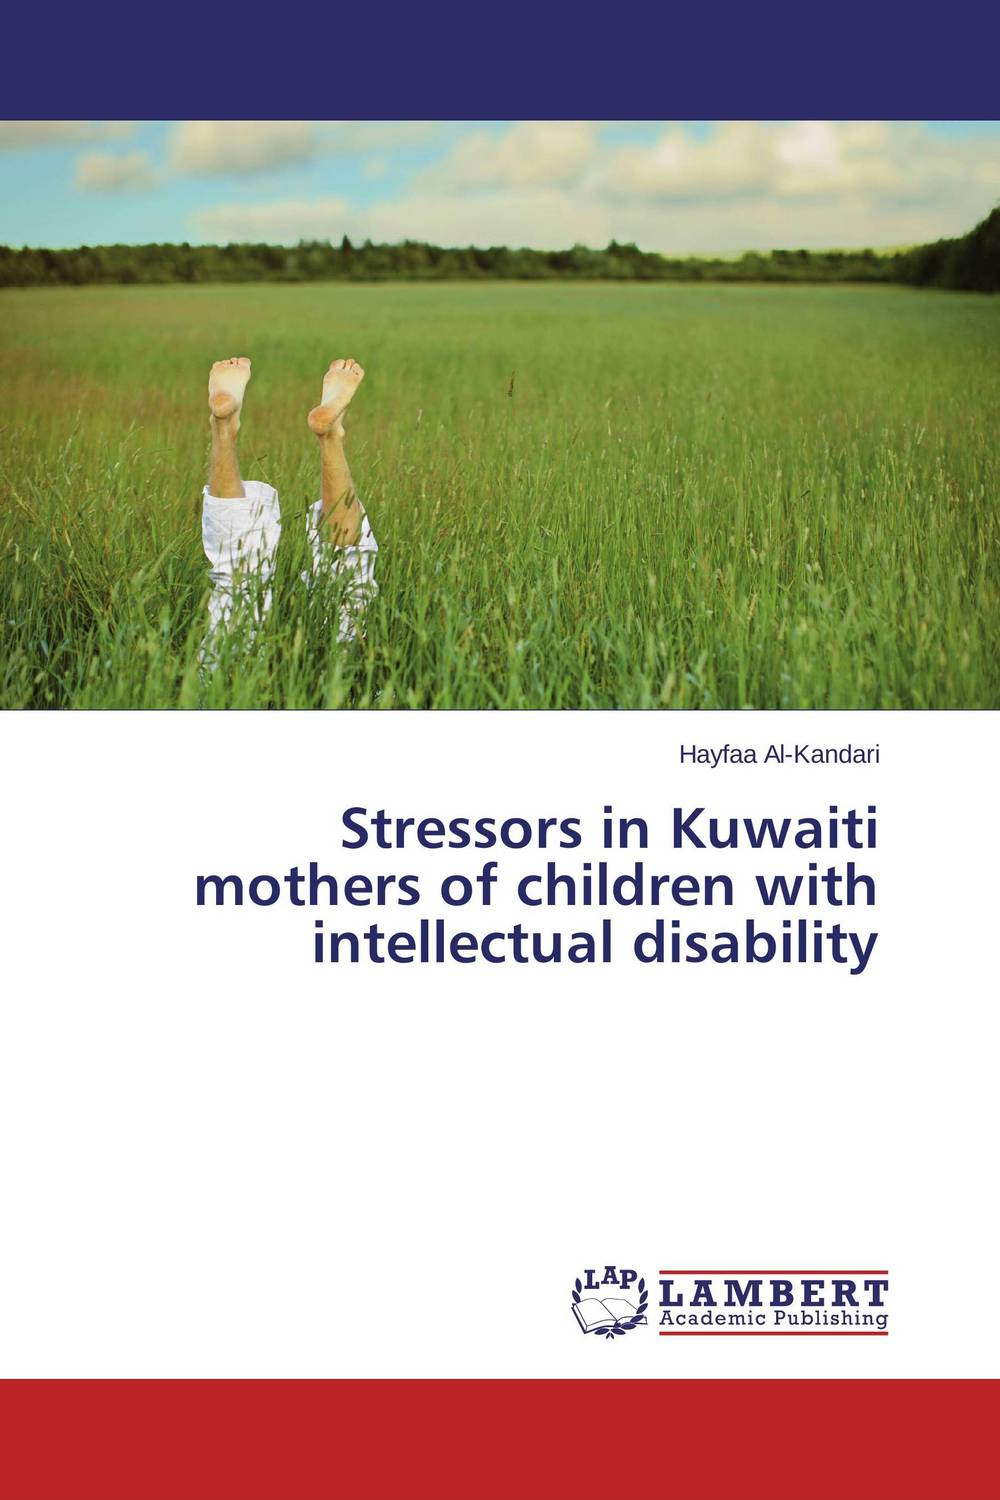 Stressors in Kuwaiti mothers of children with intellectual disability family caregiving in the new normal